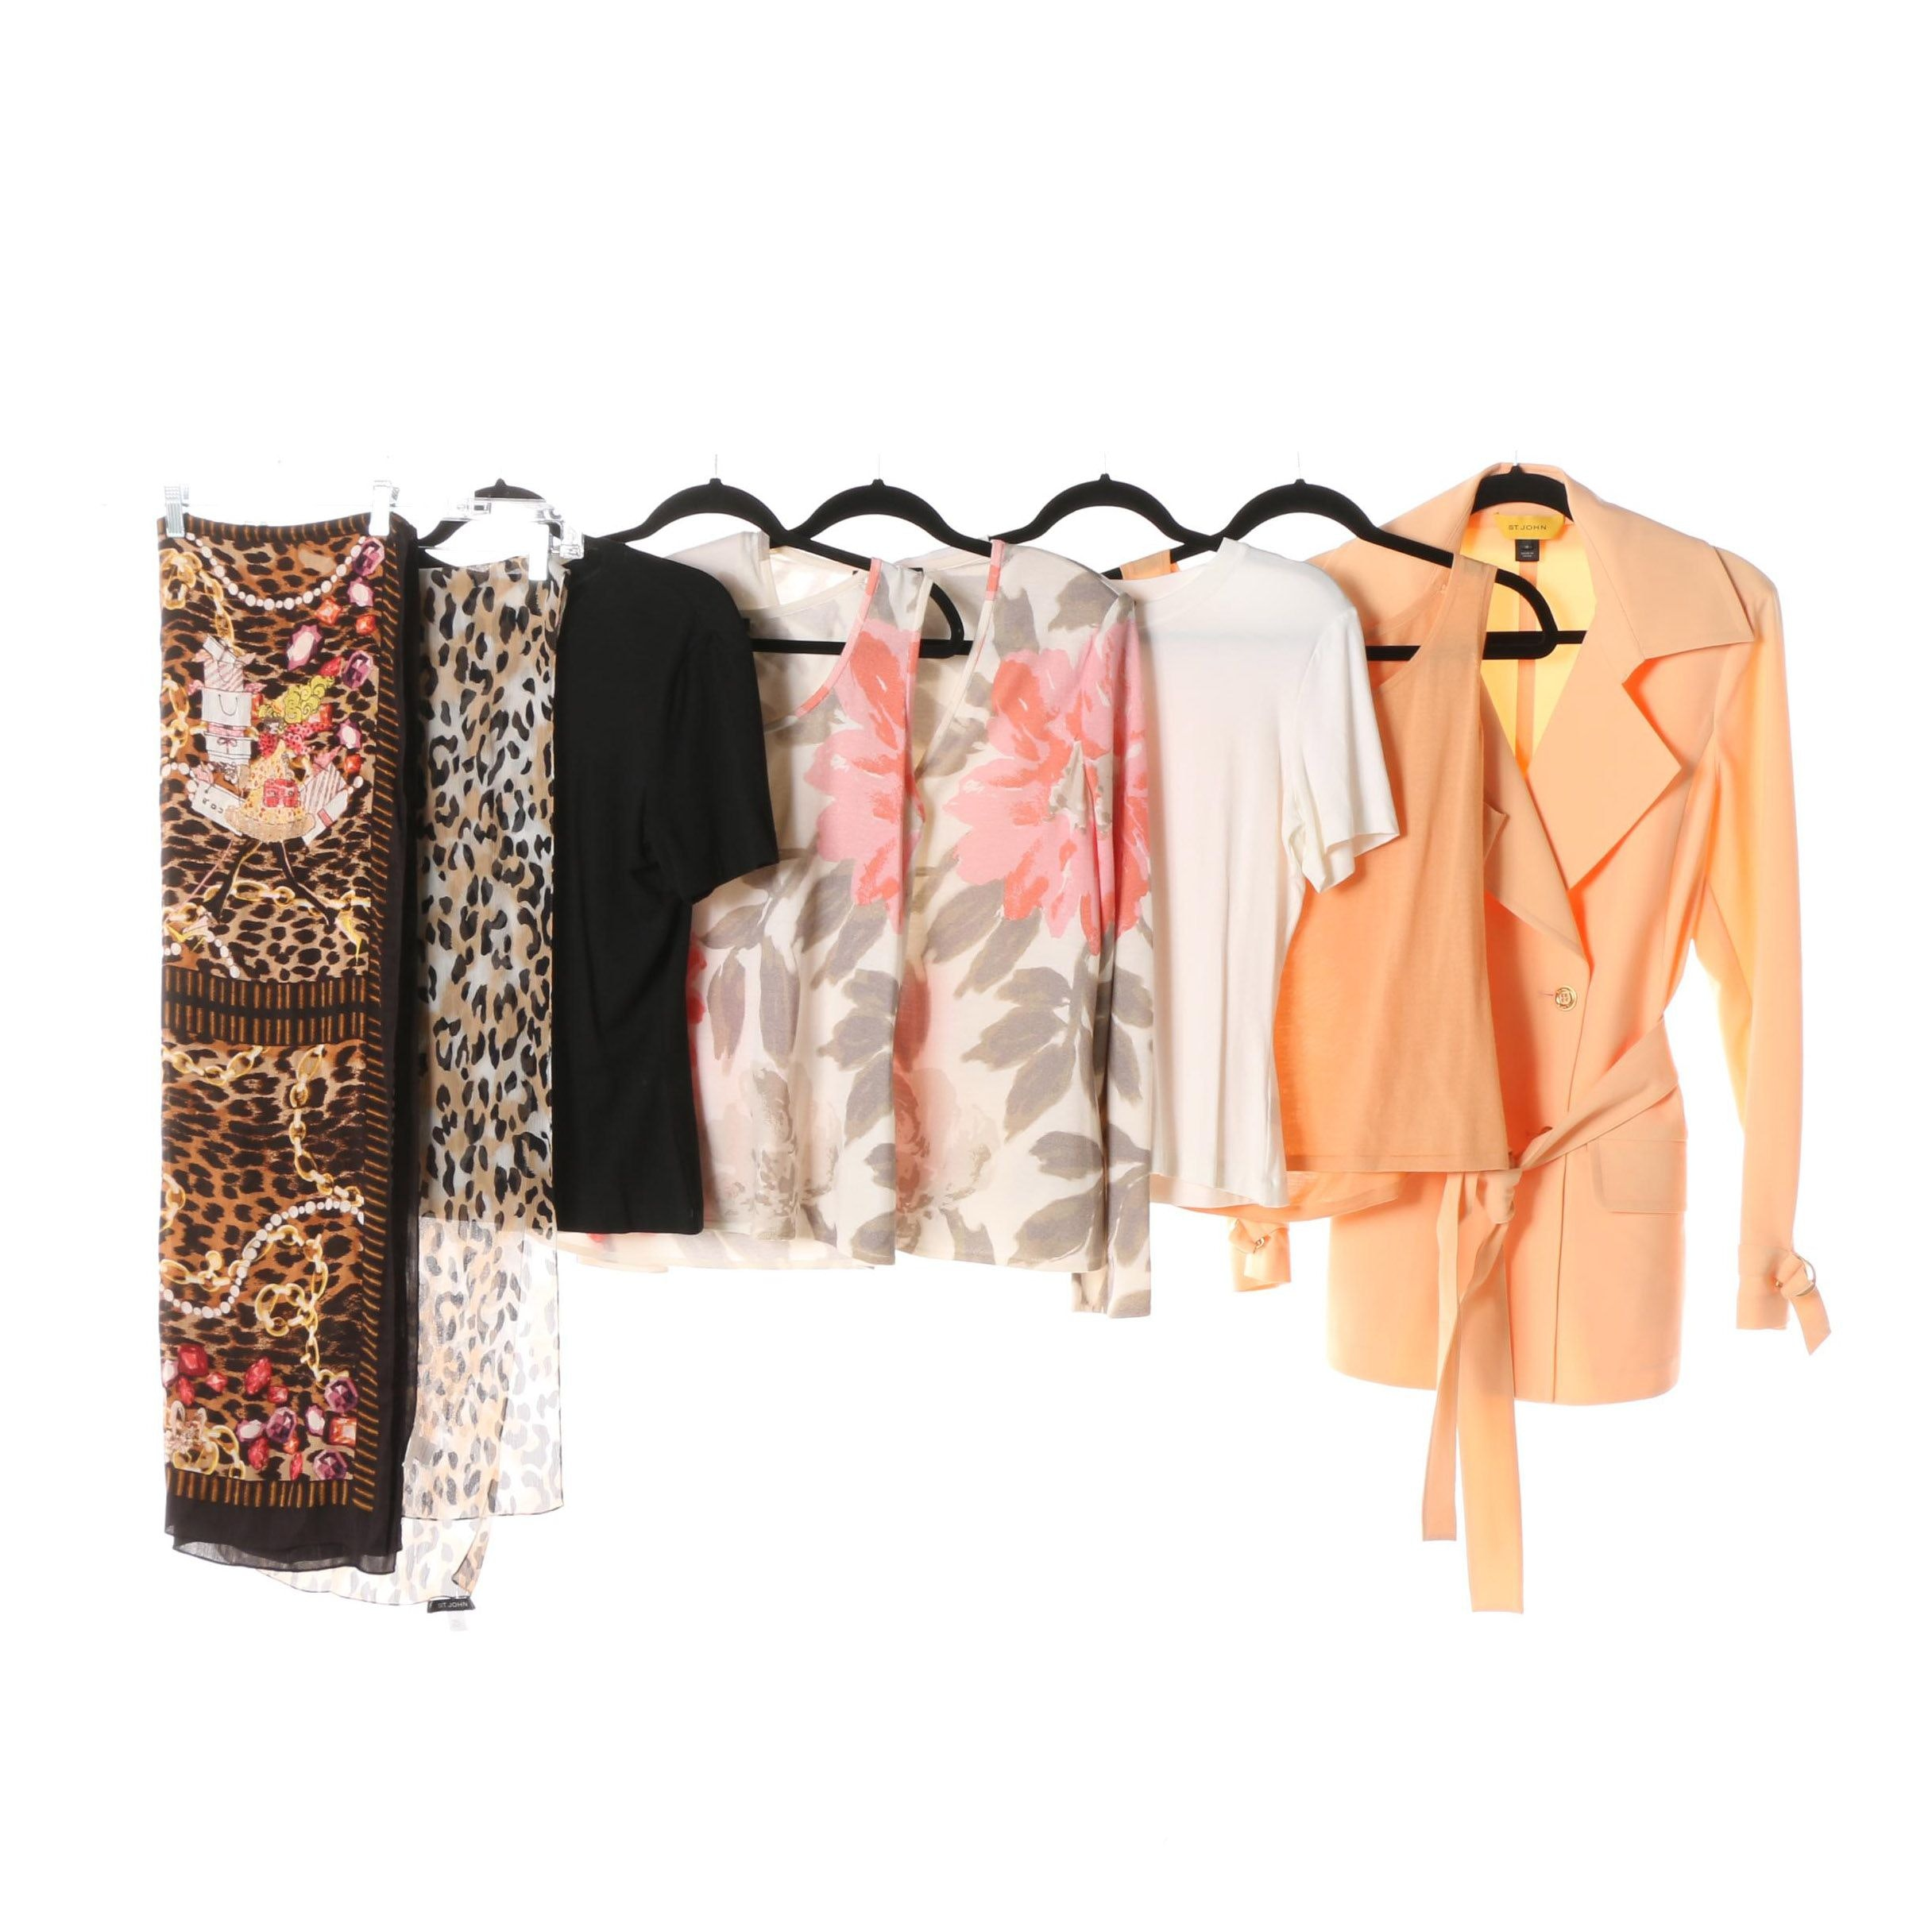 St. John Brand Clothing including Sets with Animal Print Scarves